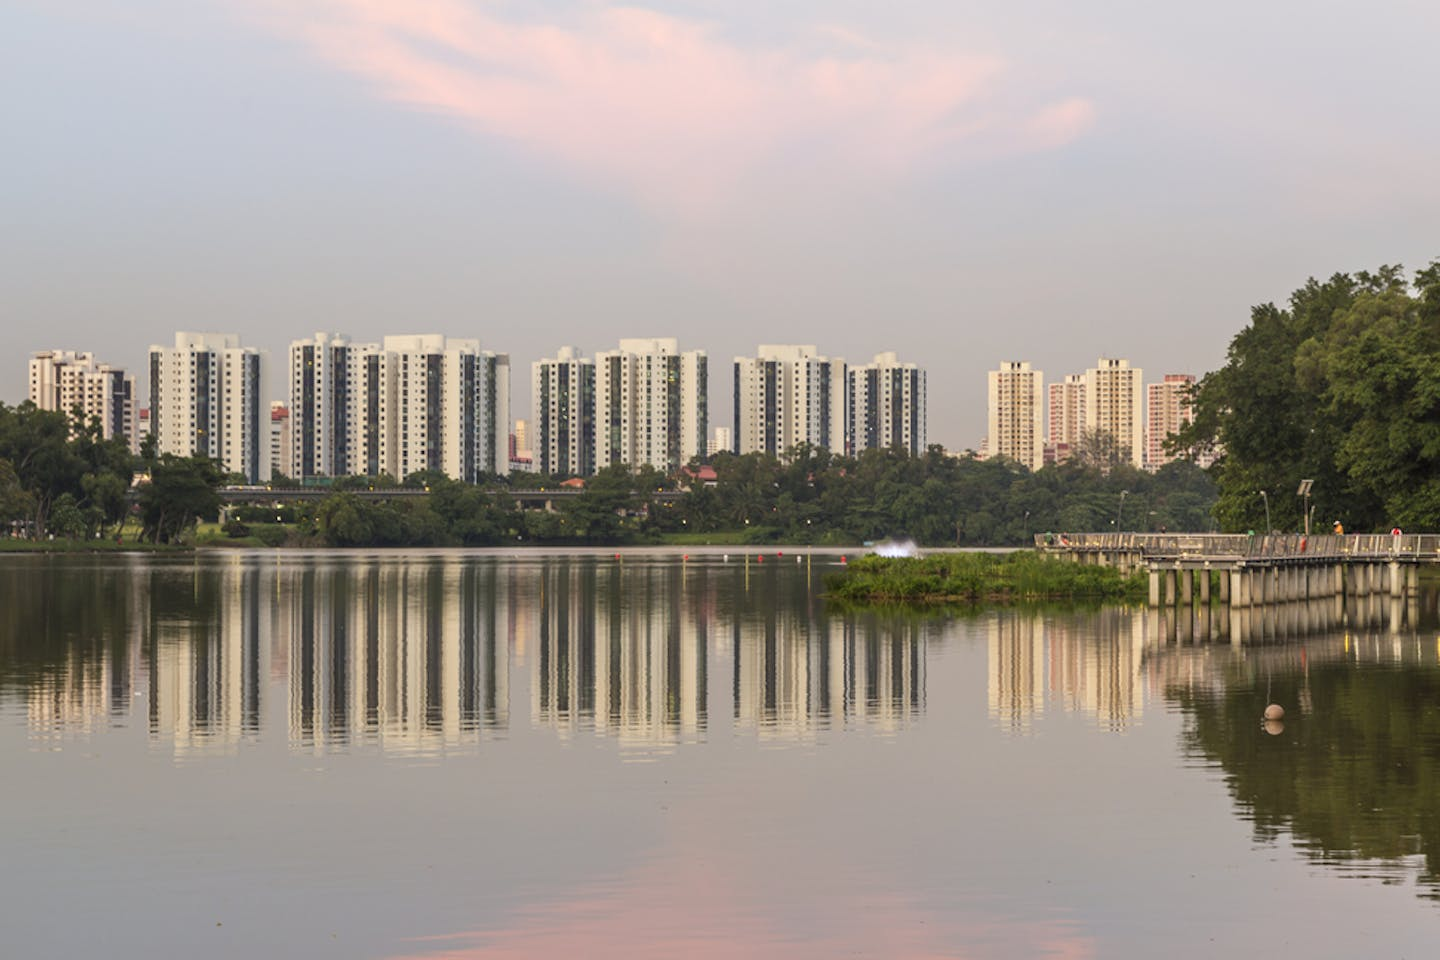 Jurong Lake District 2